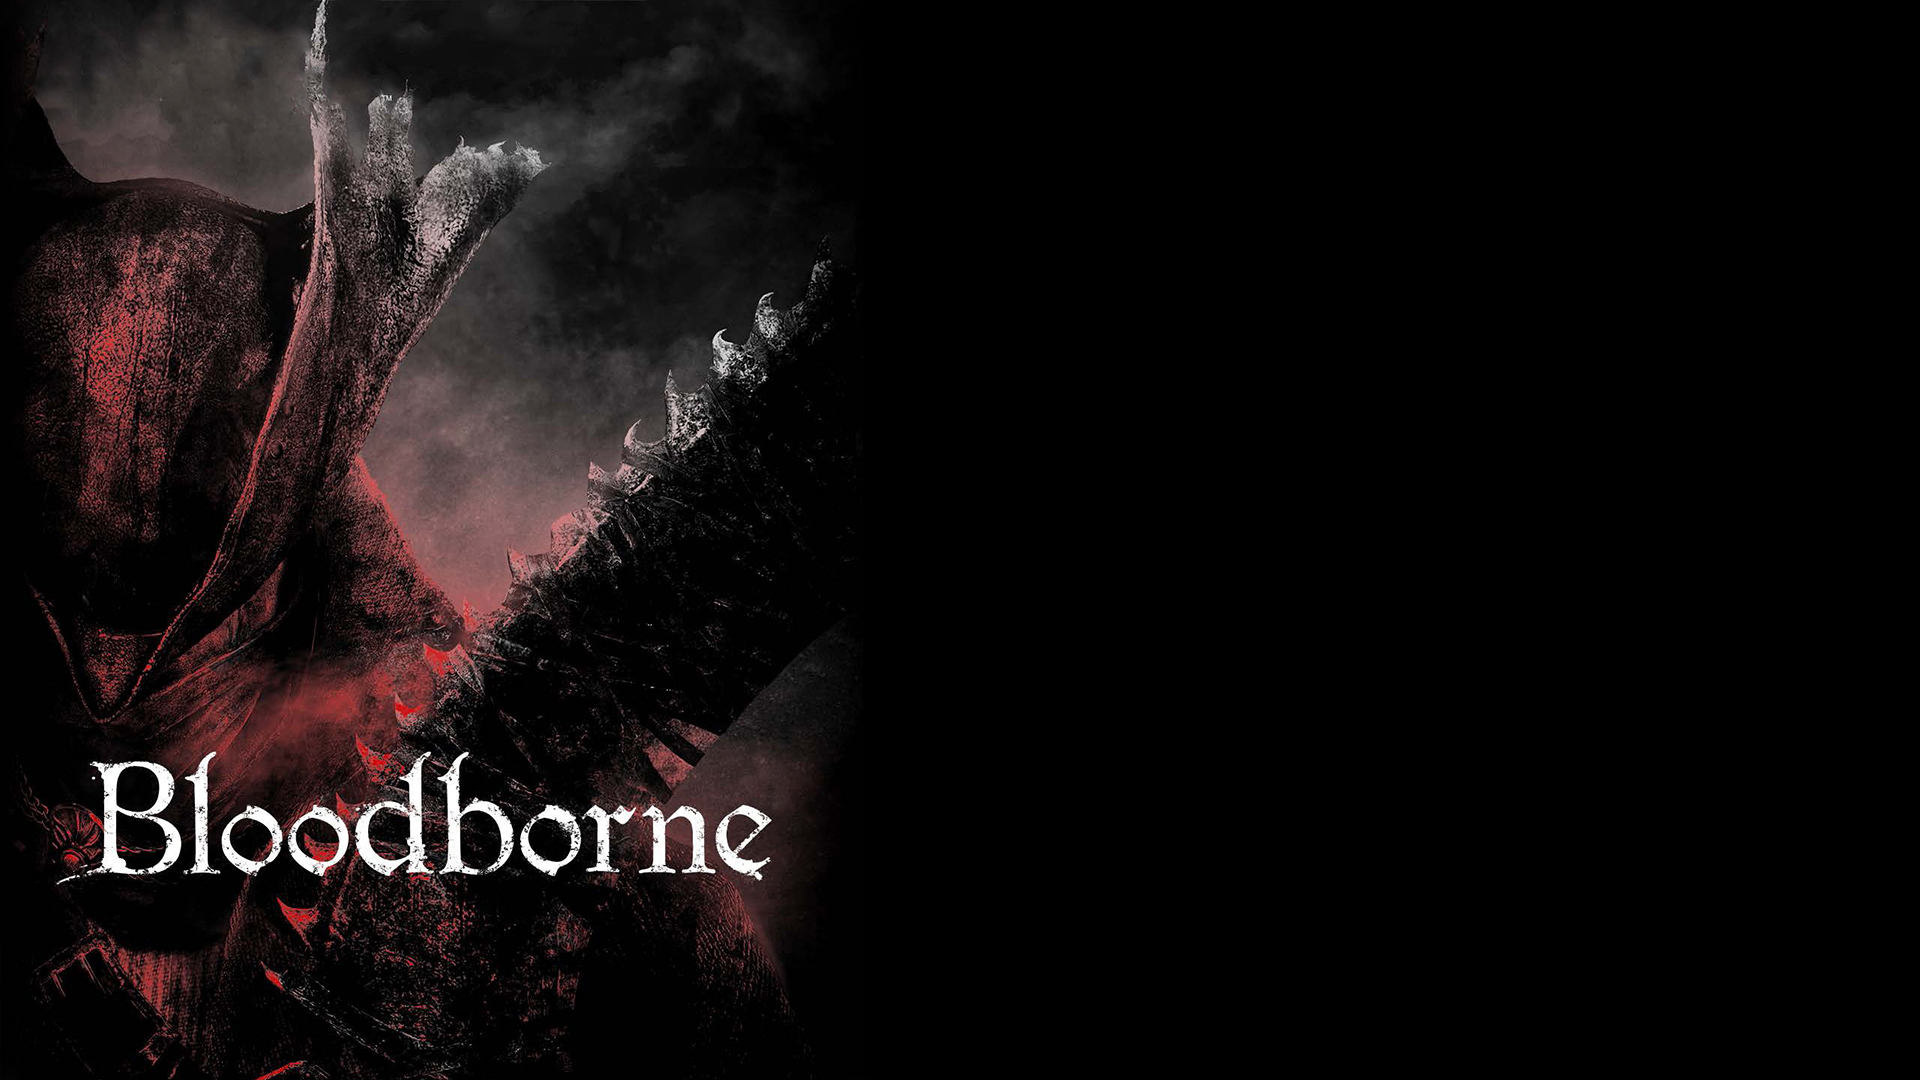 My Collection Of Bloodborne Wallpapers Personal Web Site